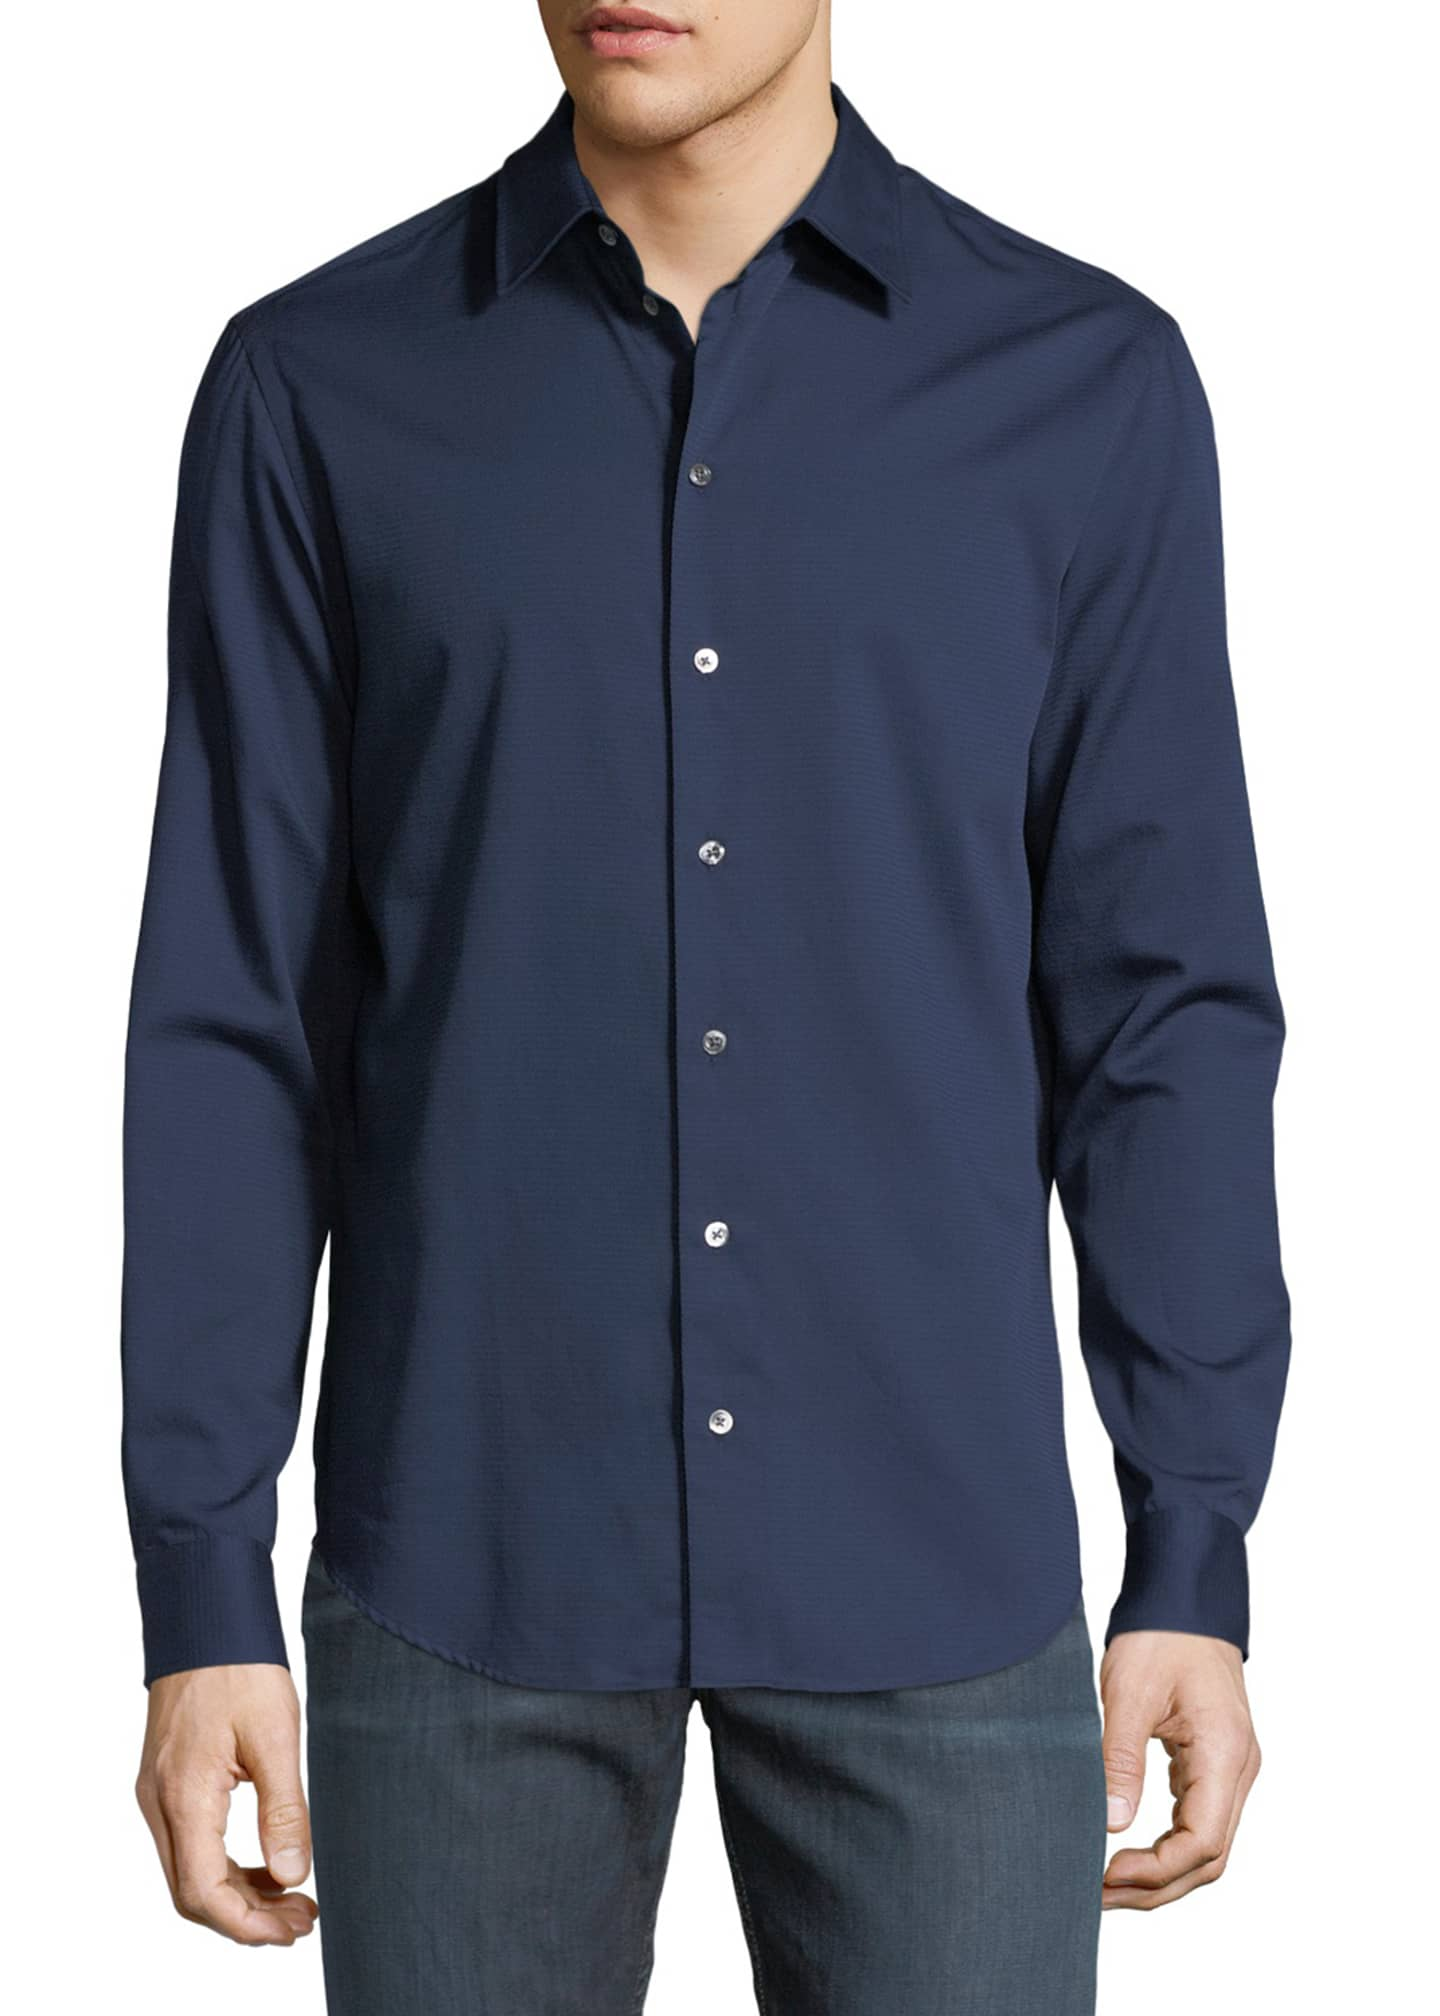 Emporio Armani Basic Woven Cotton Sport Shirt